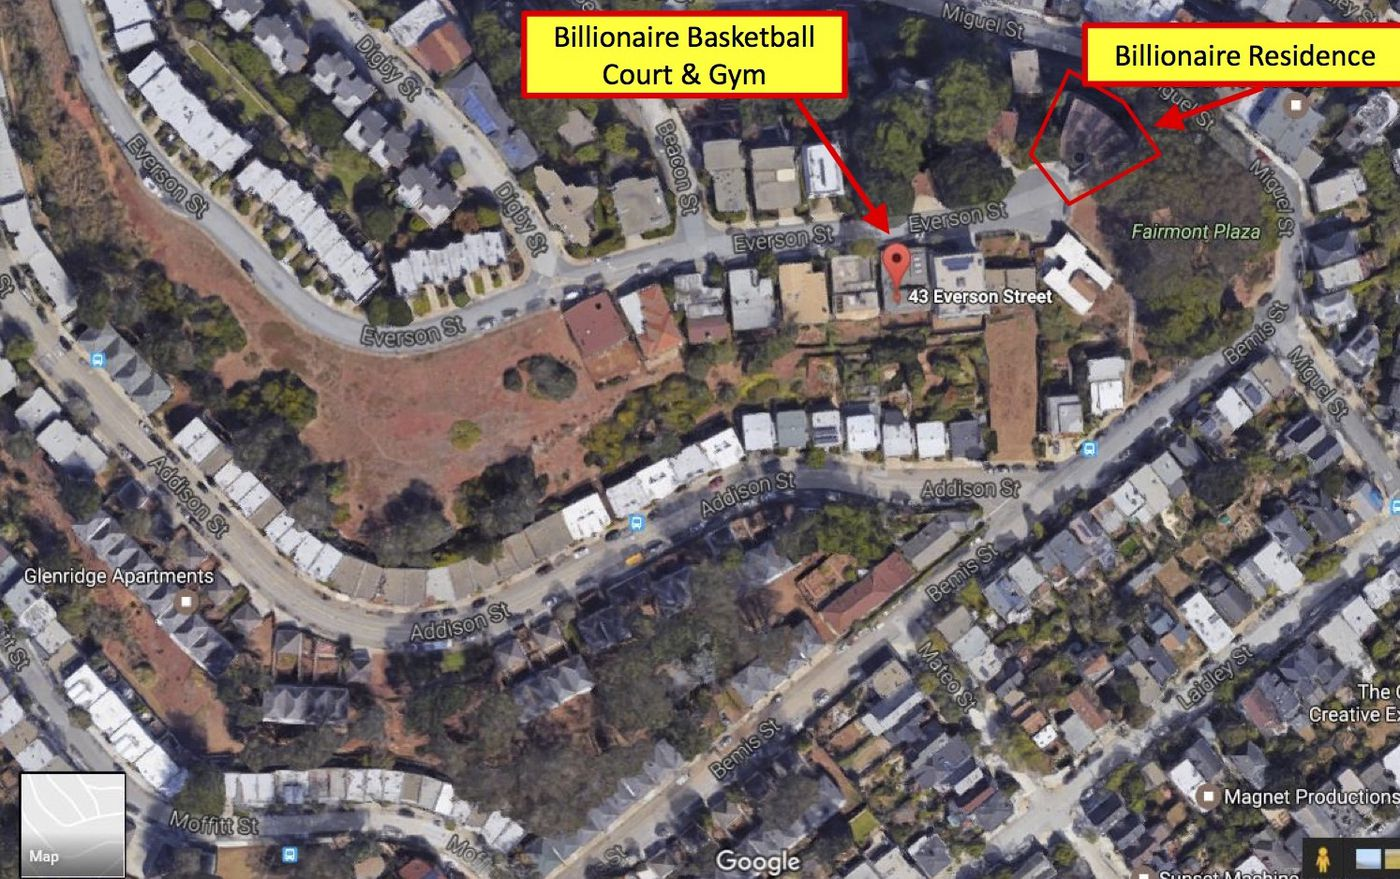 Glen Park residents fume over tech billionaire's plan for